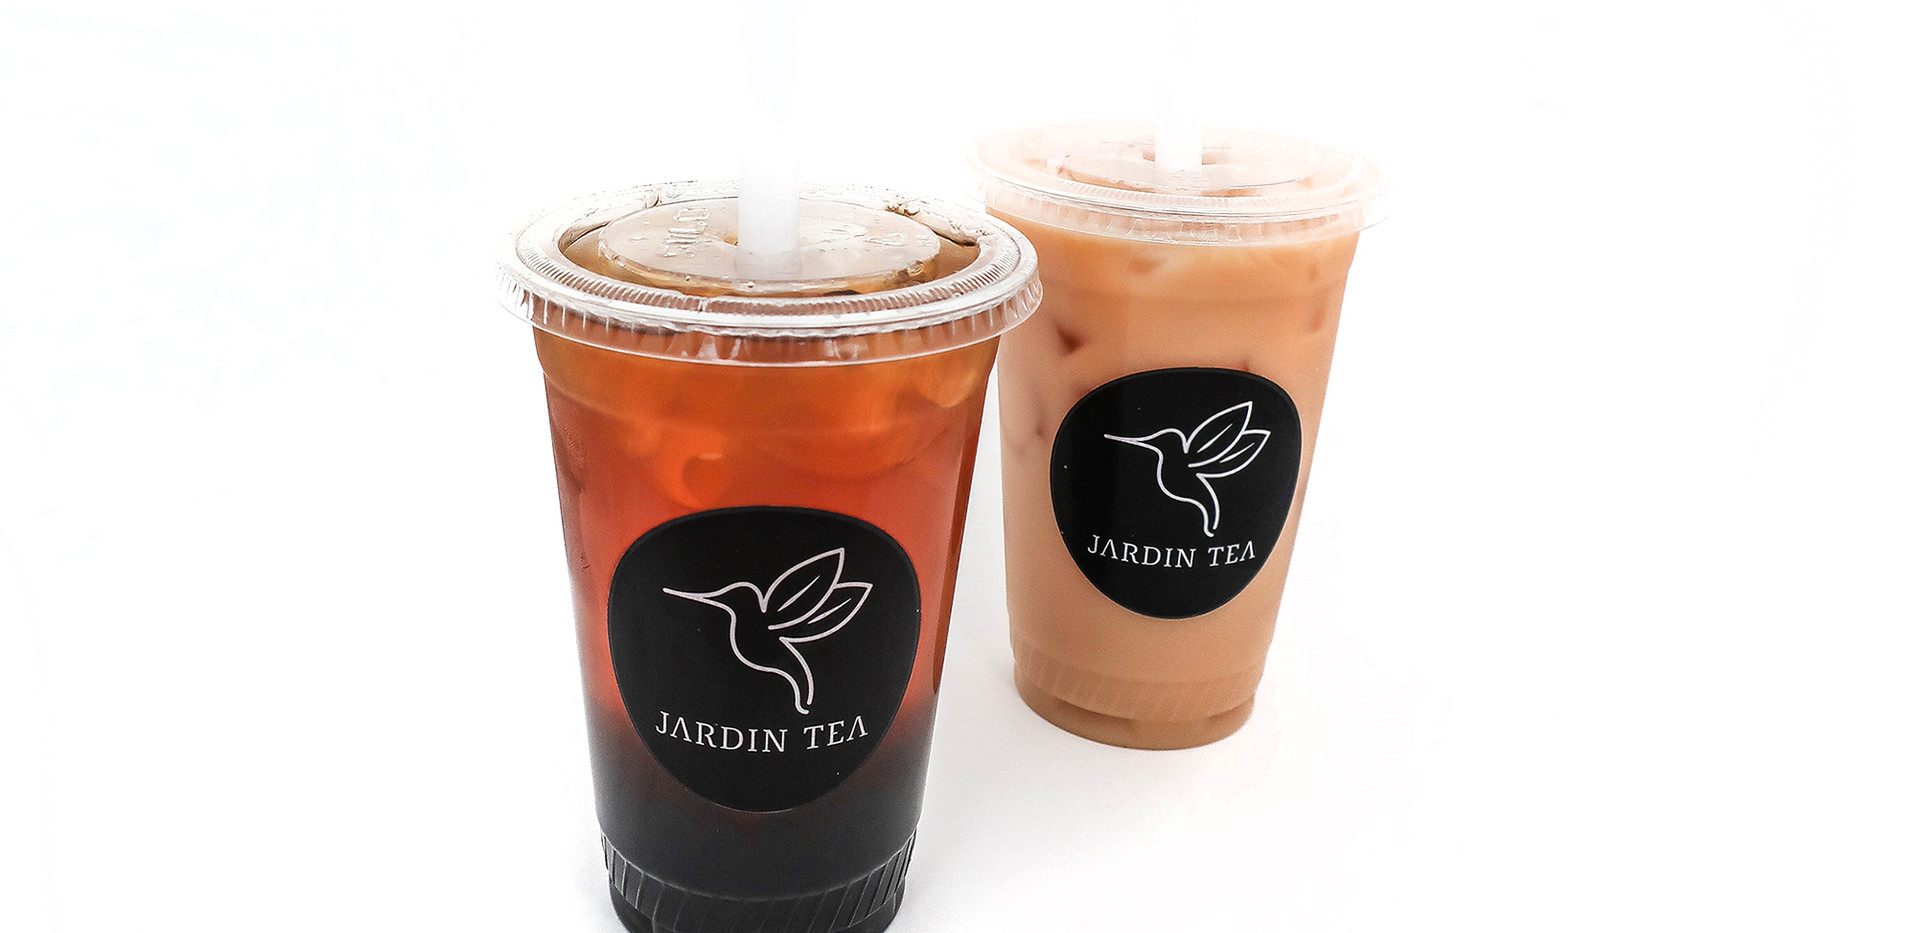 Jardin Tea Iced Tea Milk Tea Drinks